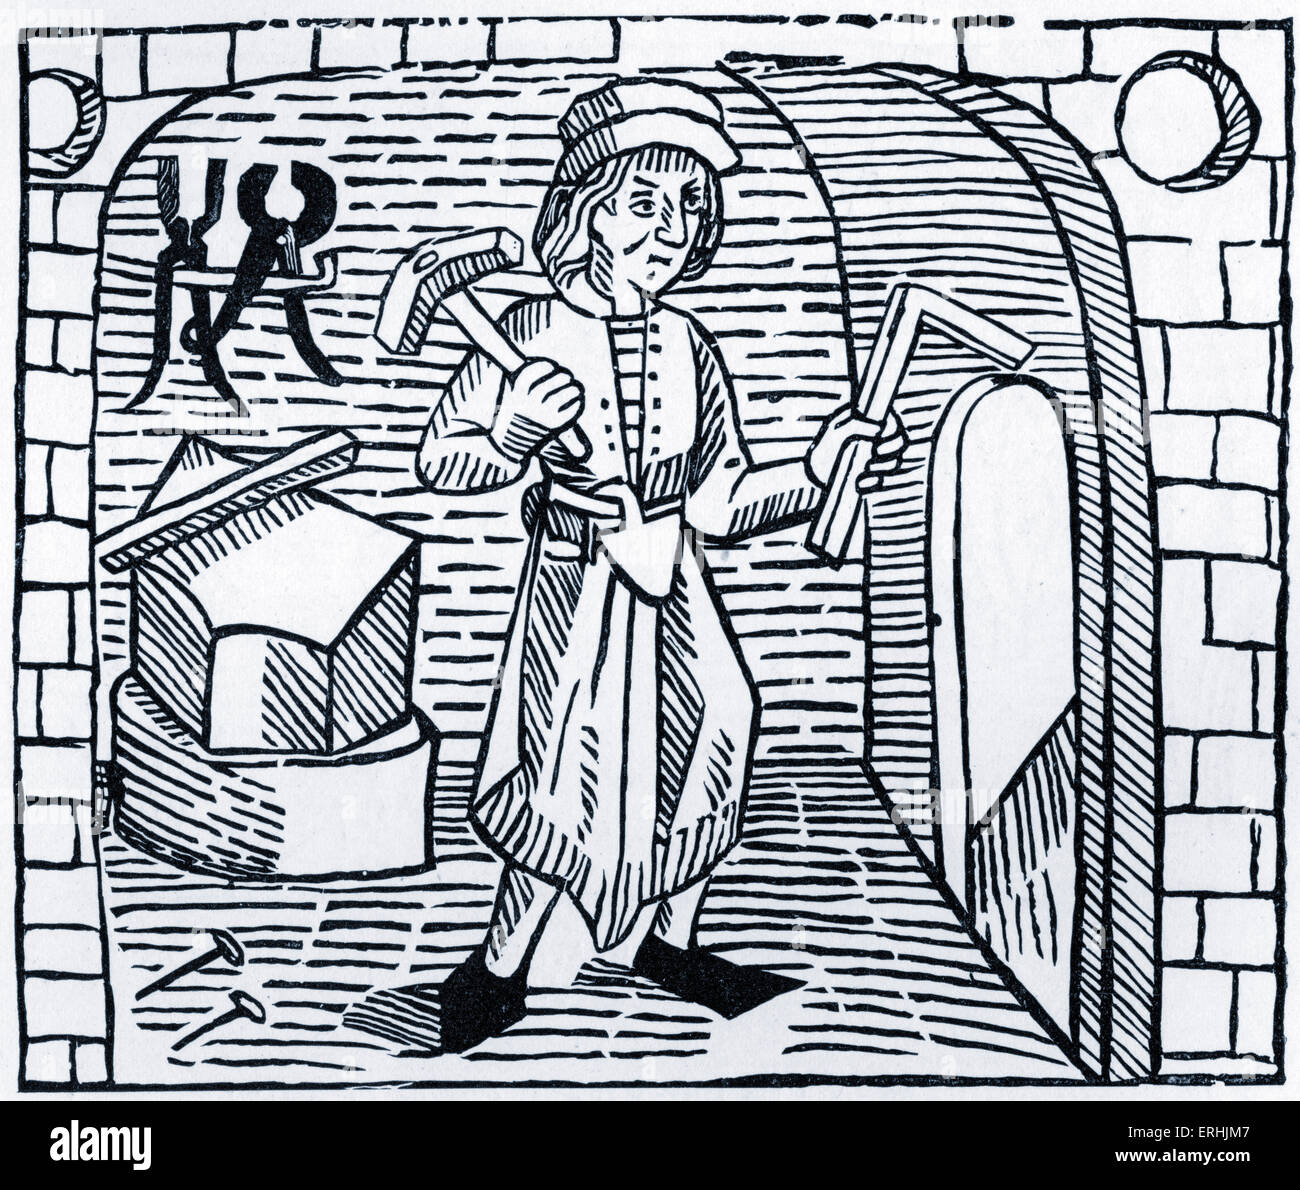 Blacksmith with a hammer and anvil.  From Caxton's 'The Game and Playe of the Chesse, c. 1483. Stock Photo